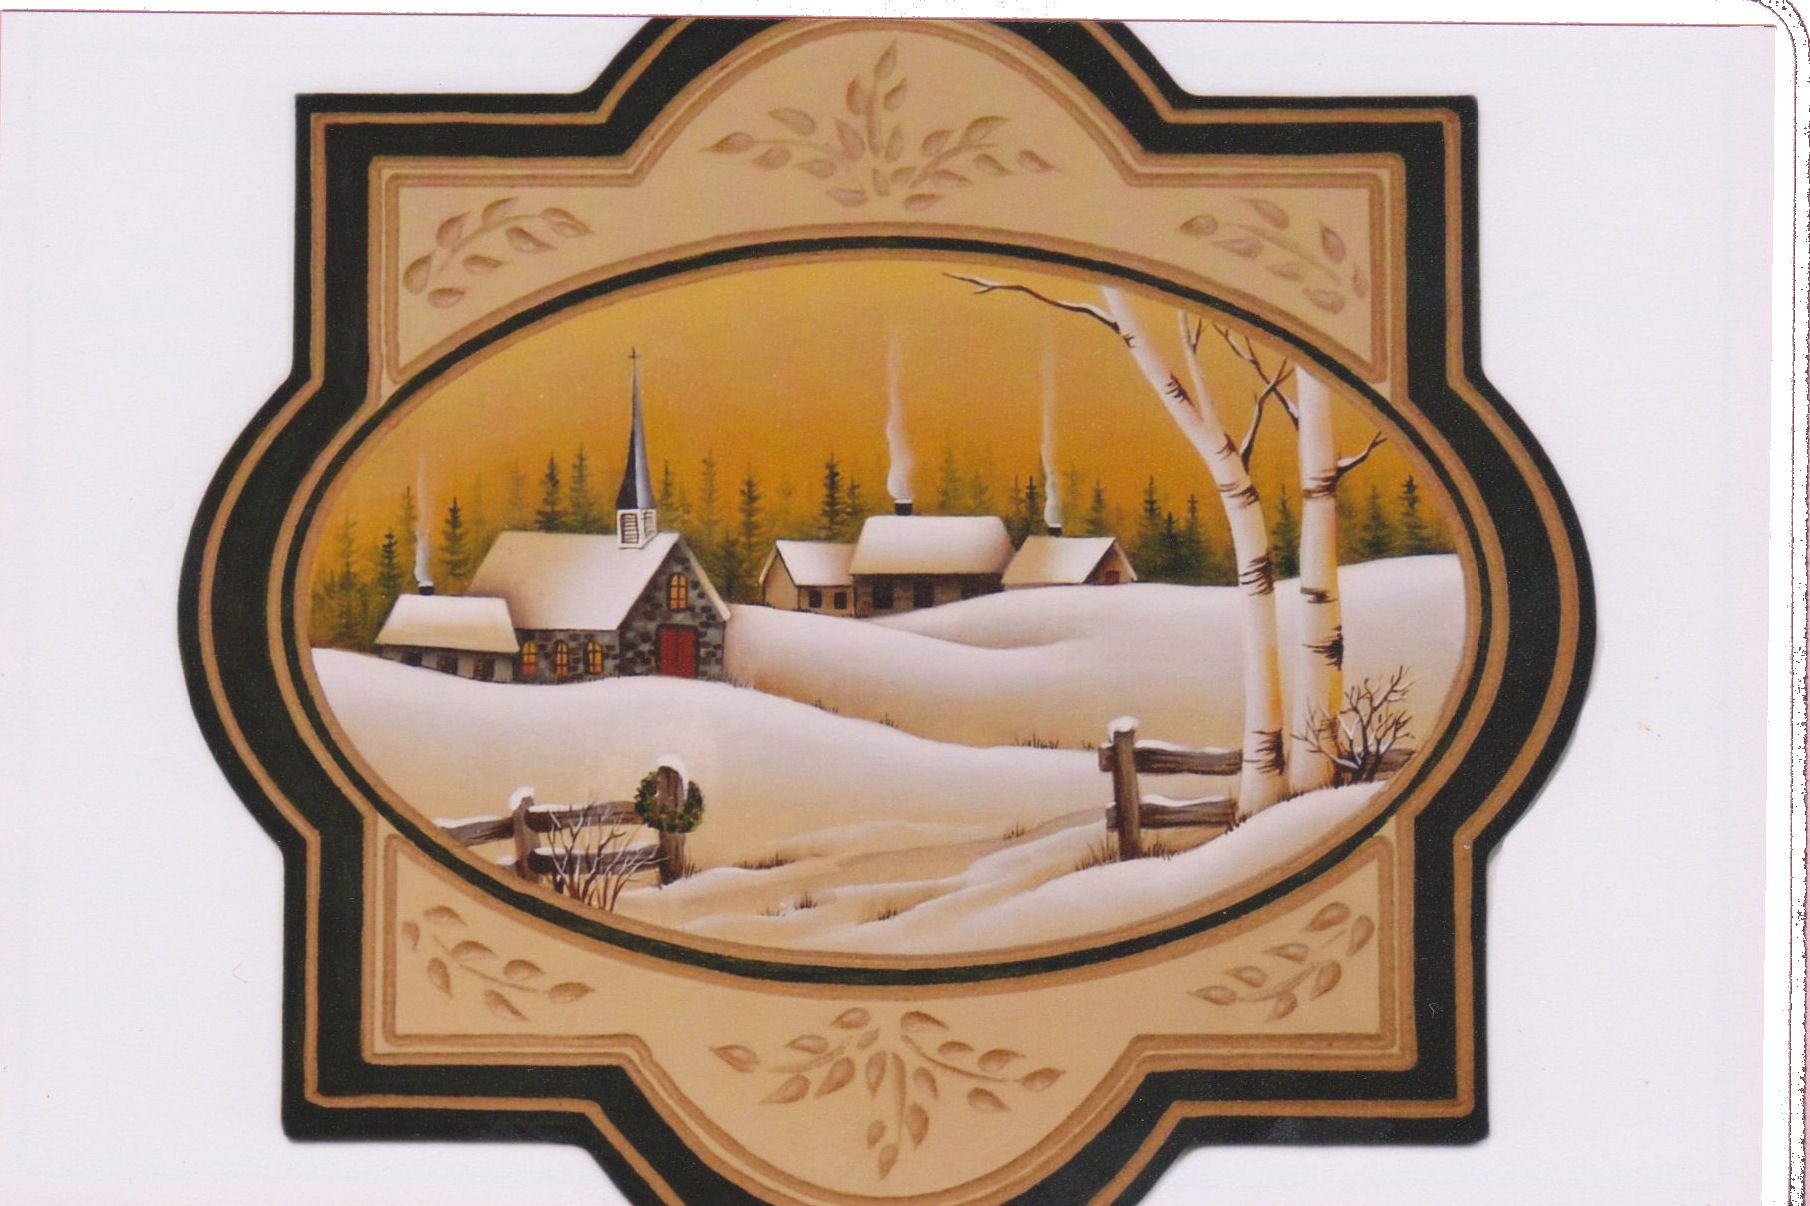 ns-christmas-in-the-country-picture-14190008.jpg